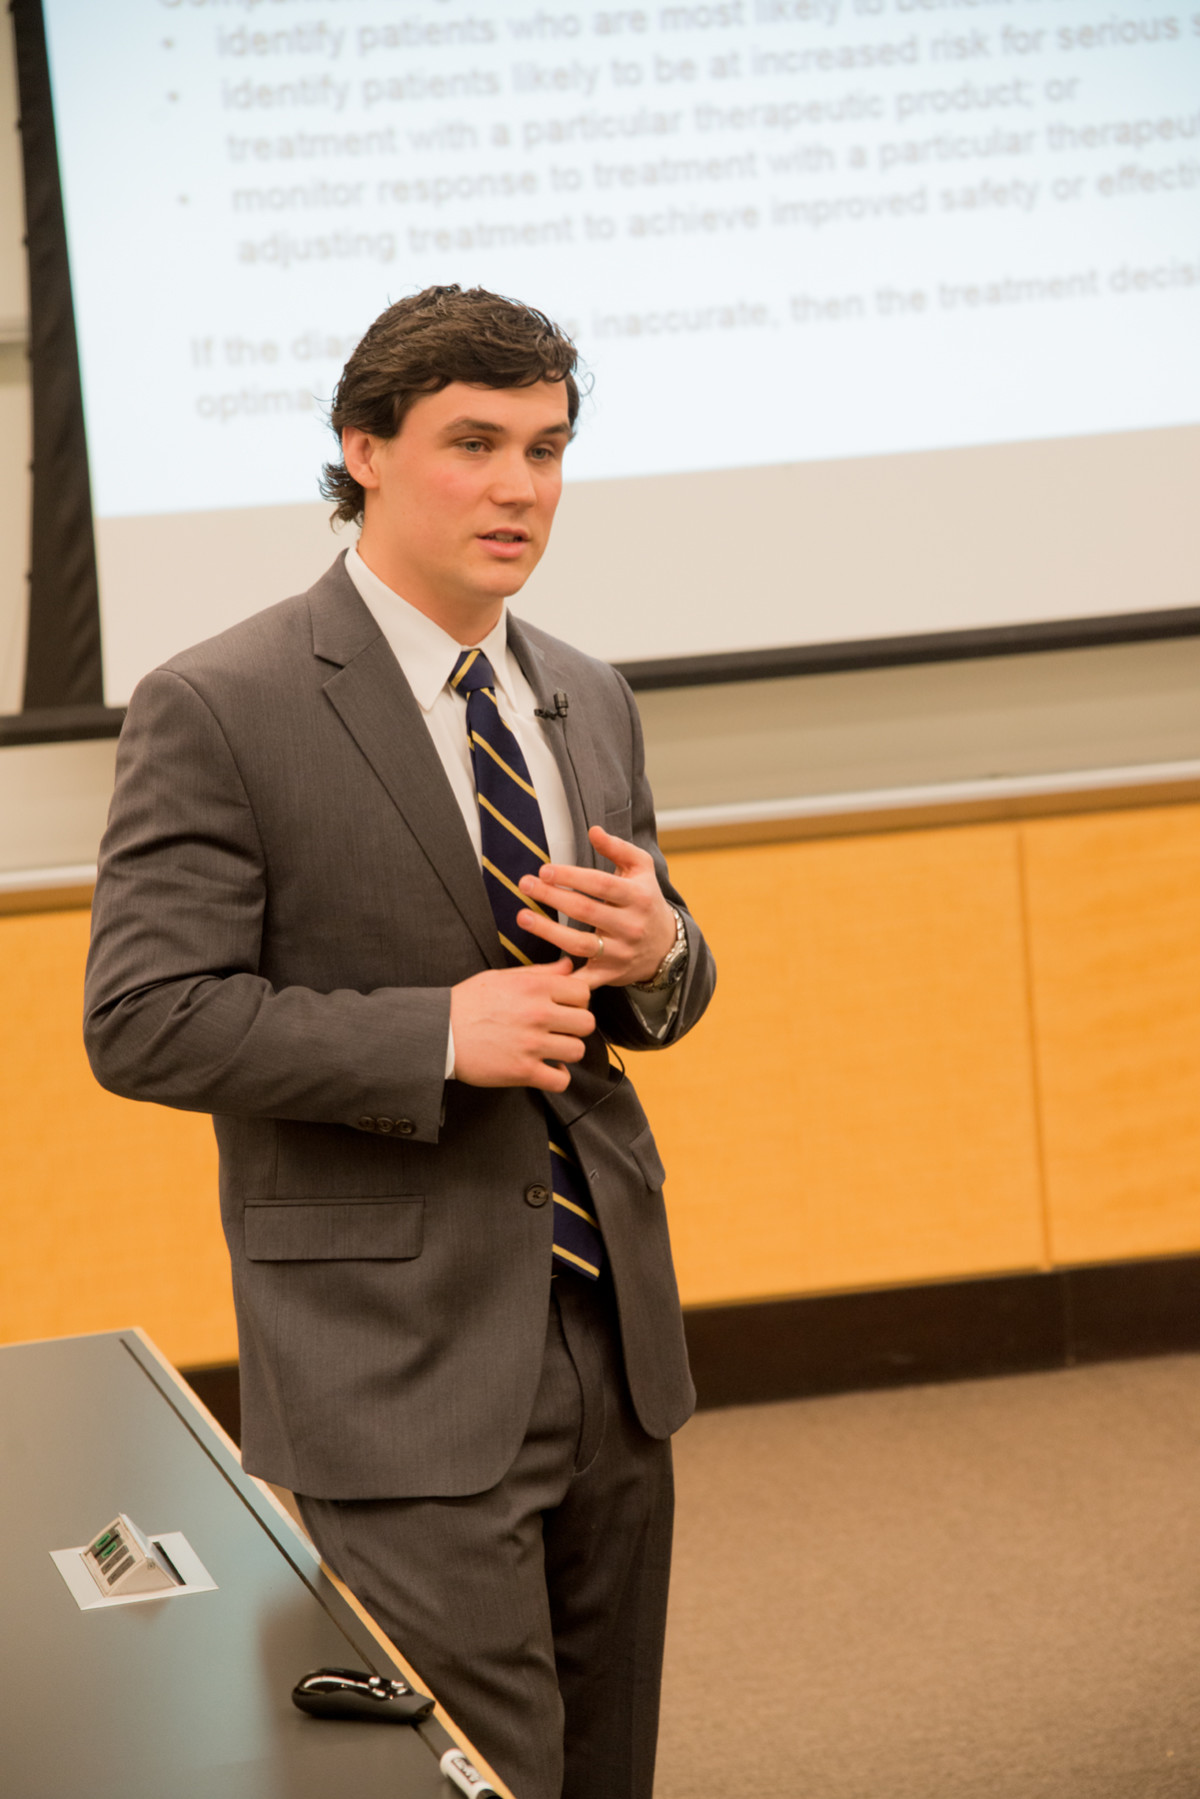 Ross School of Business student standing in front of projector screen during his presentation.